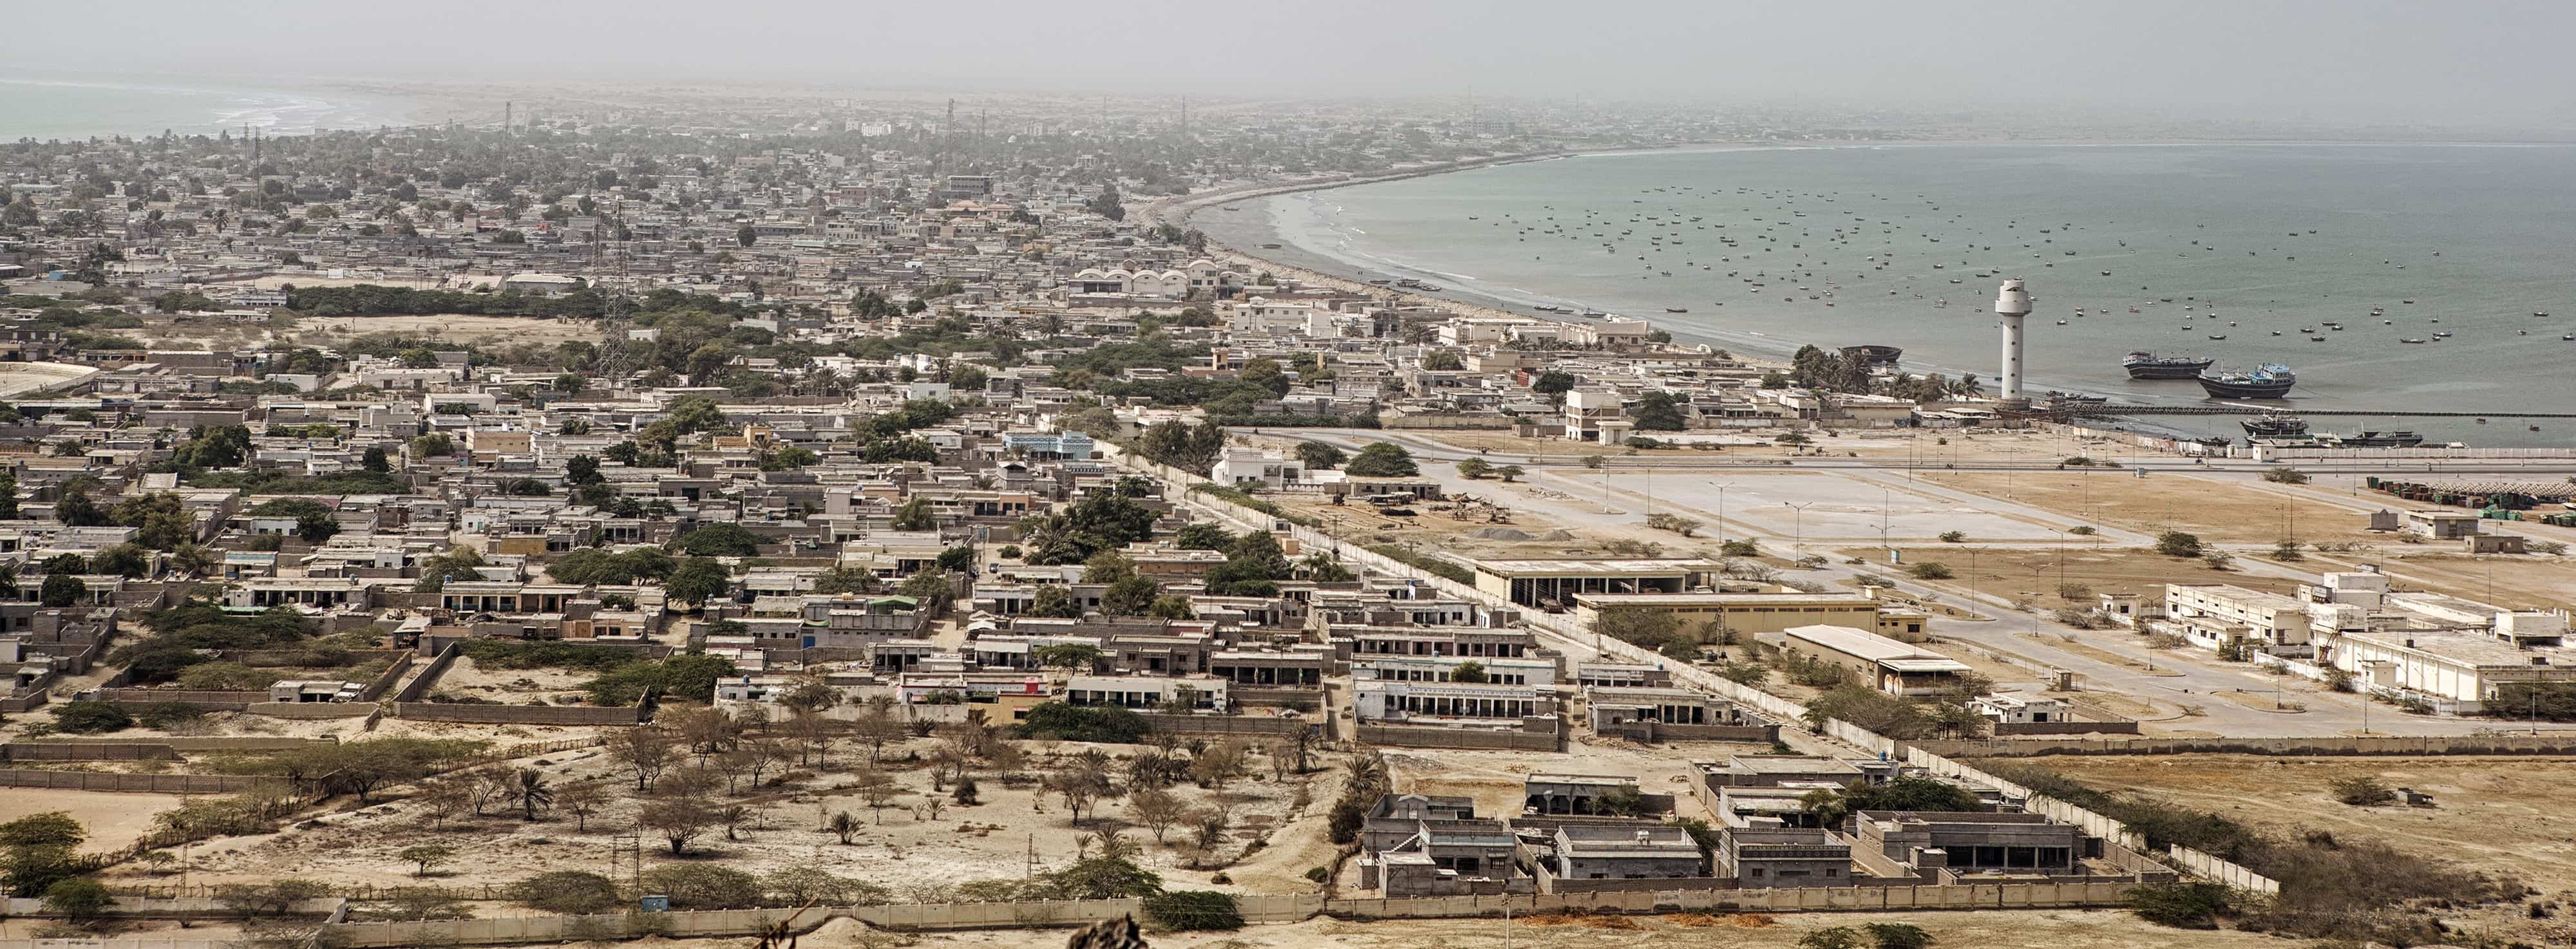 Gwadar, Pakistan, the 'crown jewel' of the China-Pakistan Economic Corridor, 2016 (Photo: Getty Images/Bloomberg/Asim Hafeez)